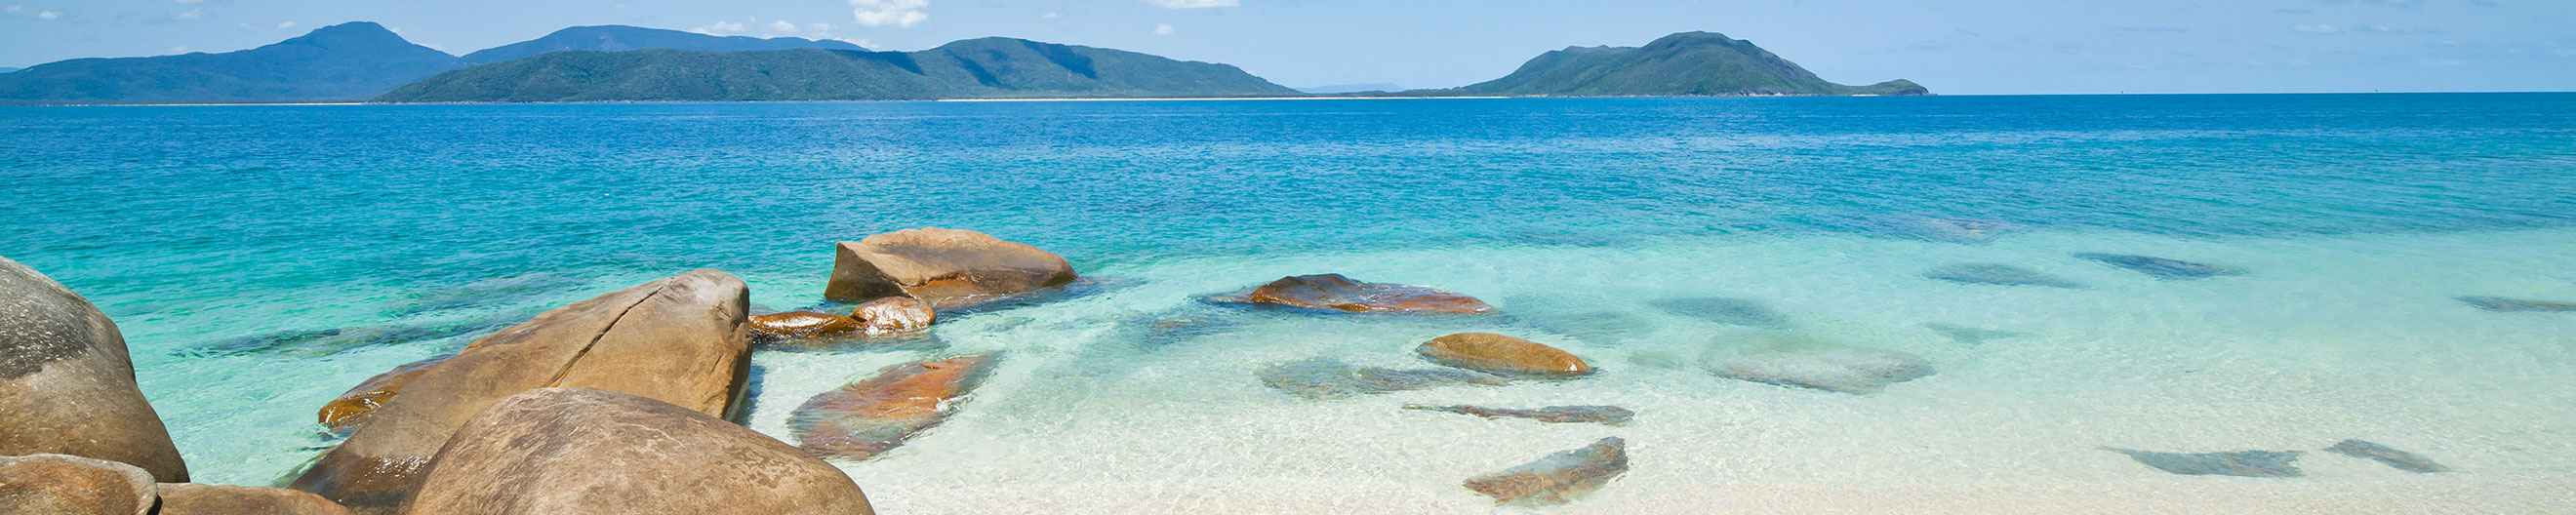 Cheapest Flights To Magnetic Island